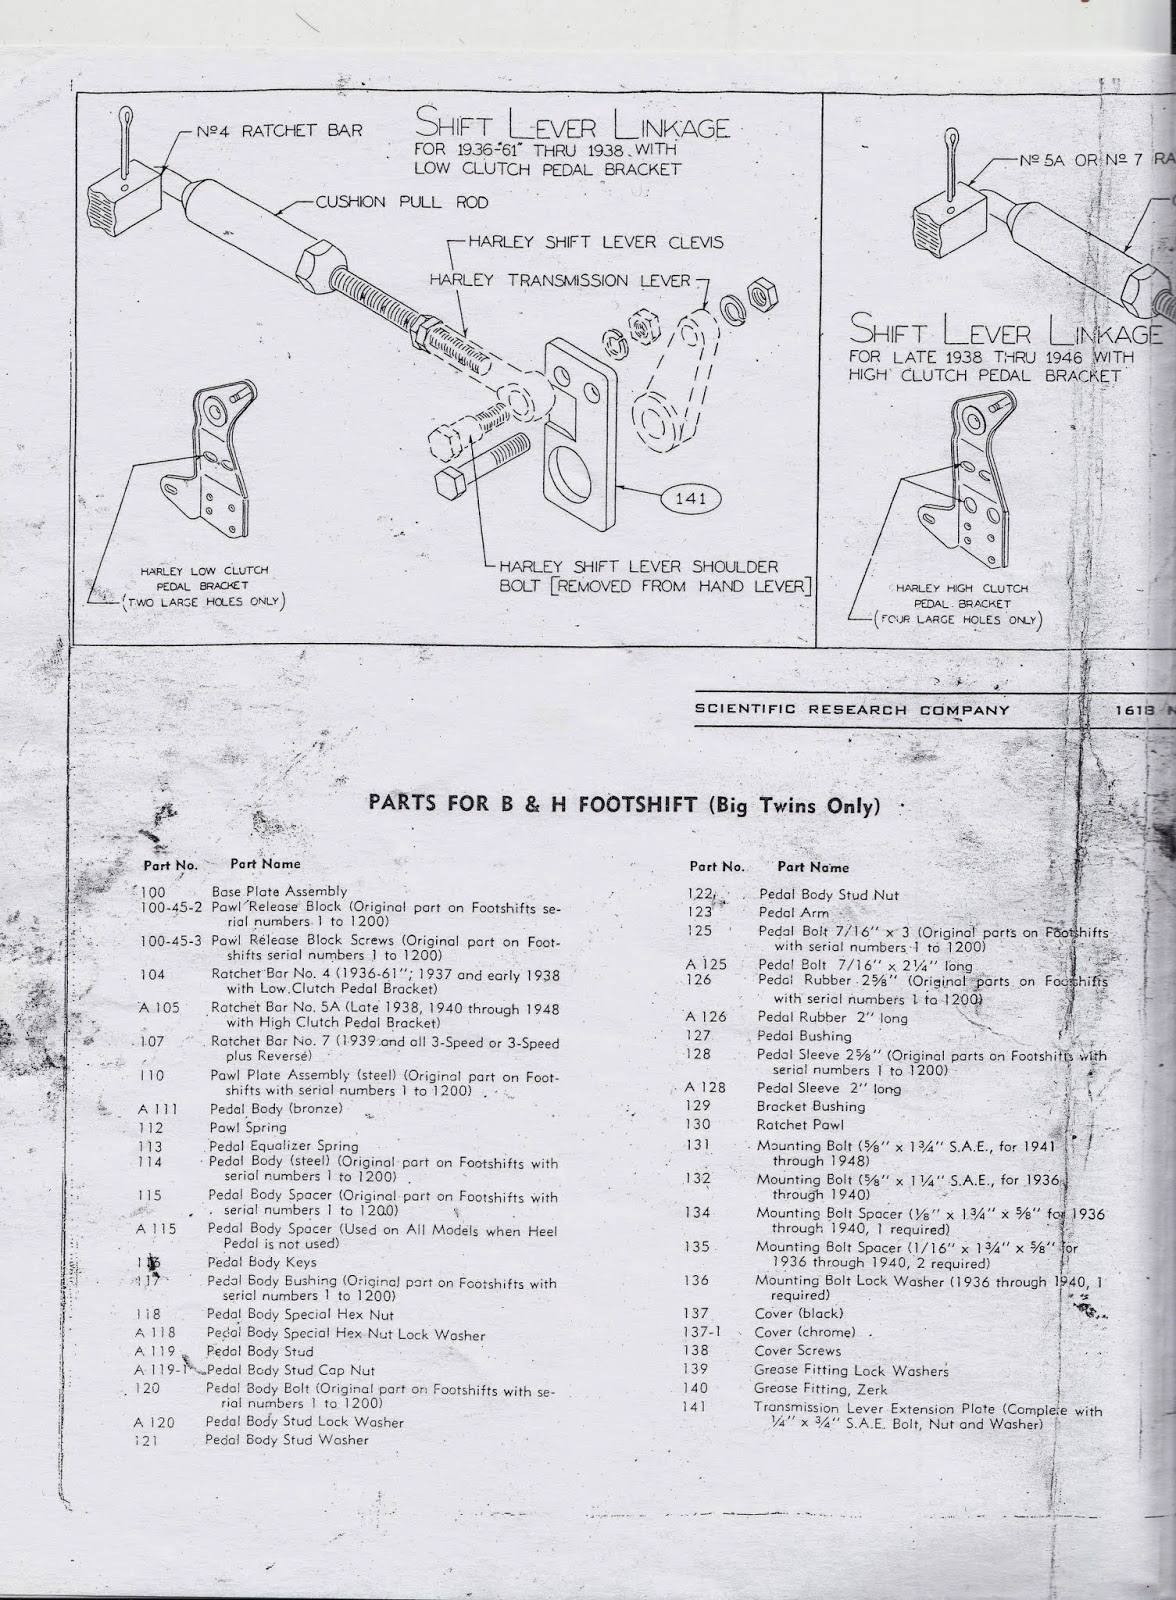 Knuckle Buster 1939: B&H Footshift Instructions and Parts